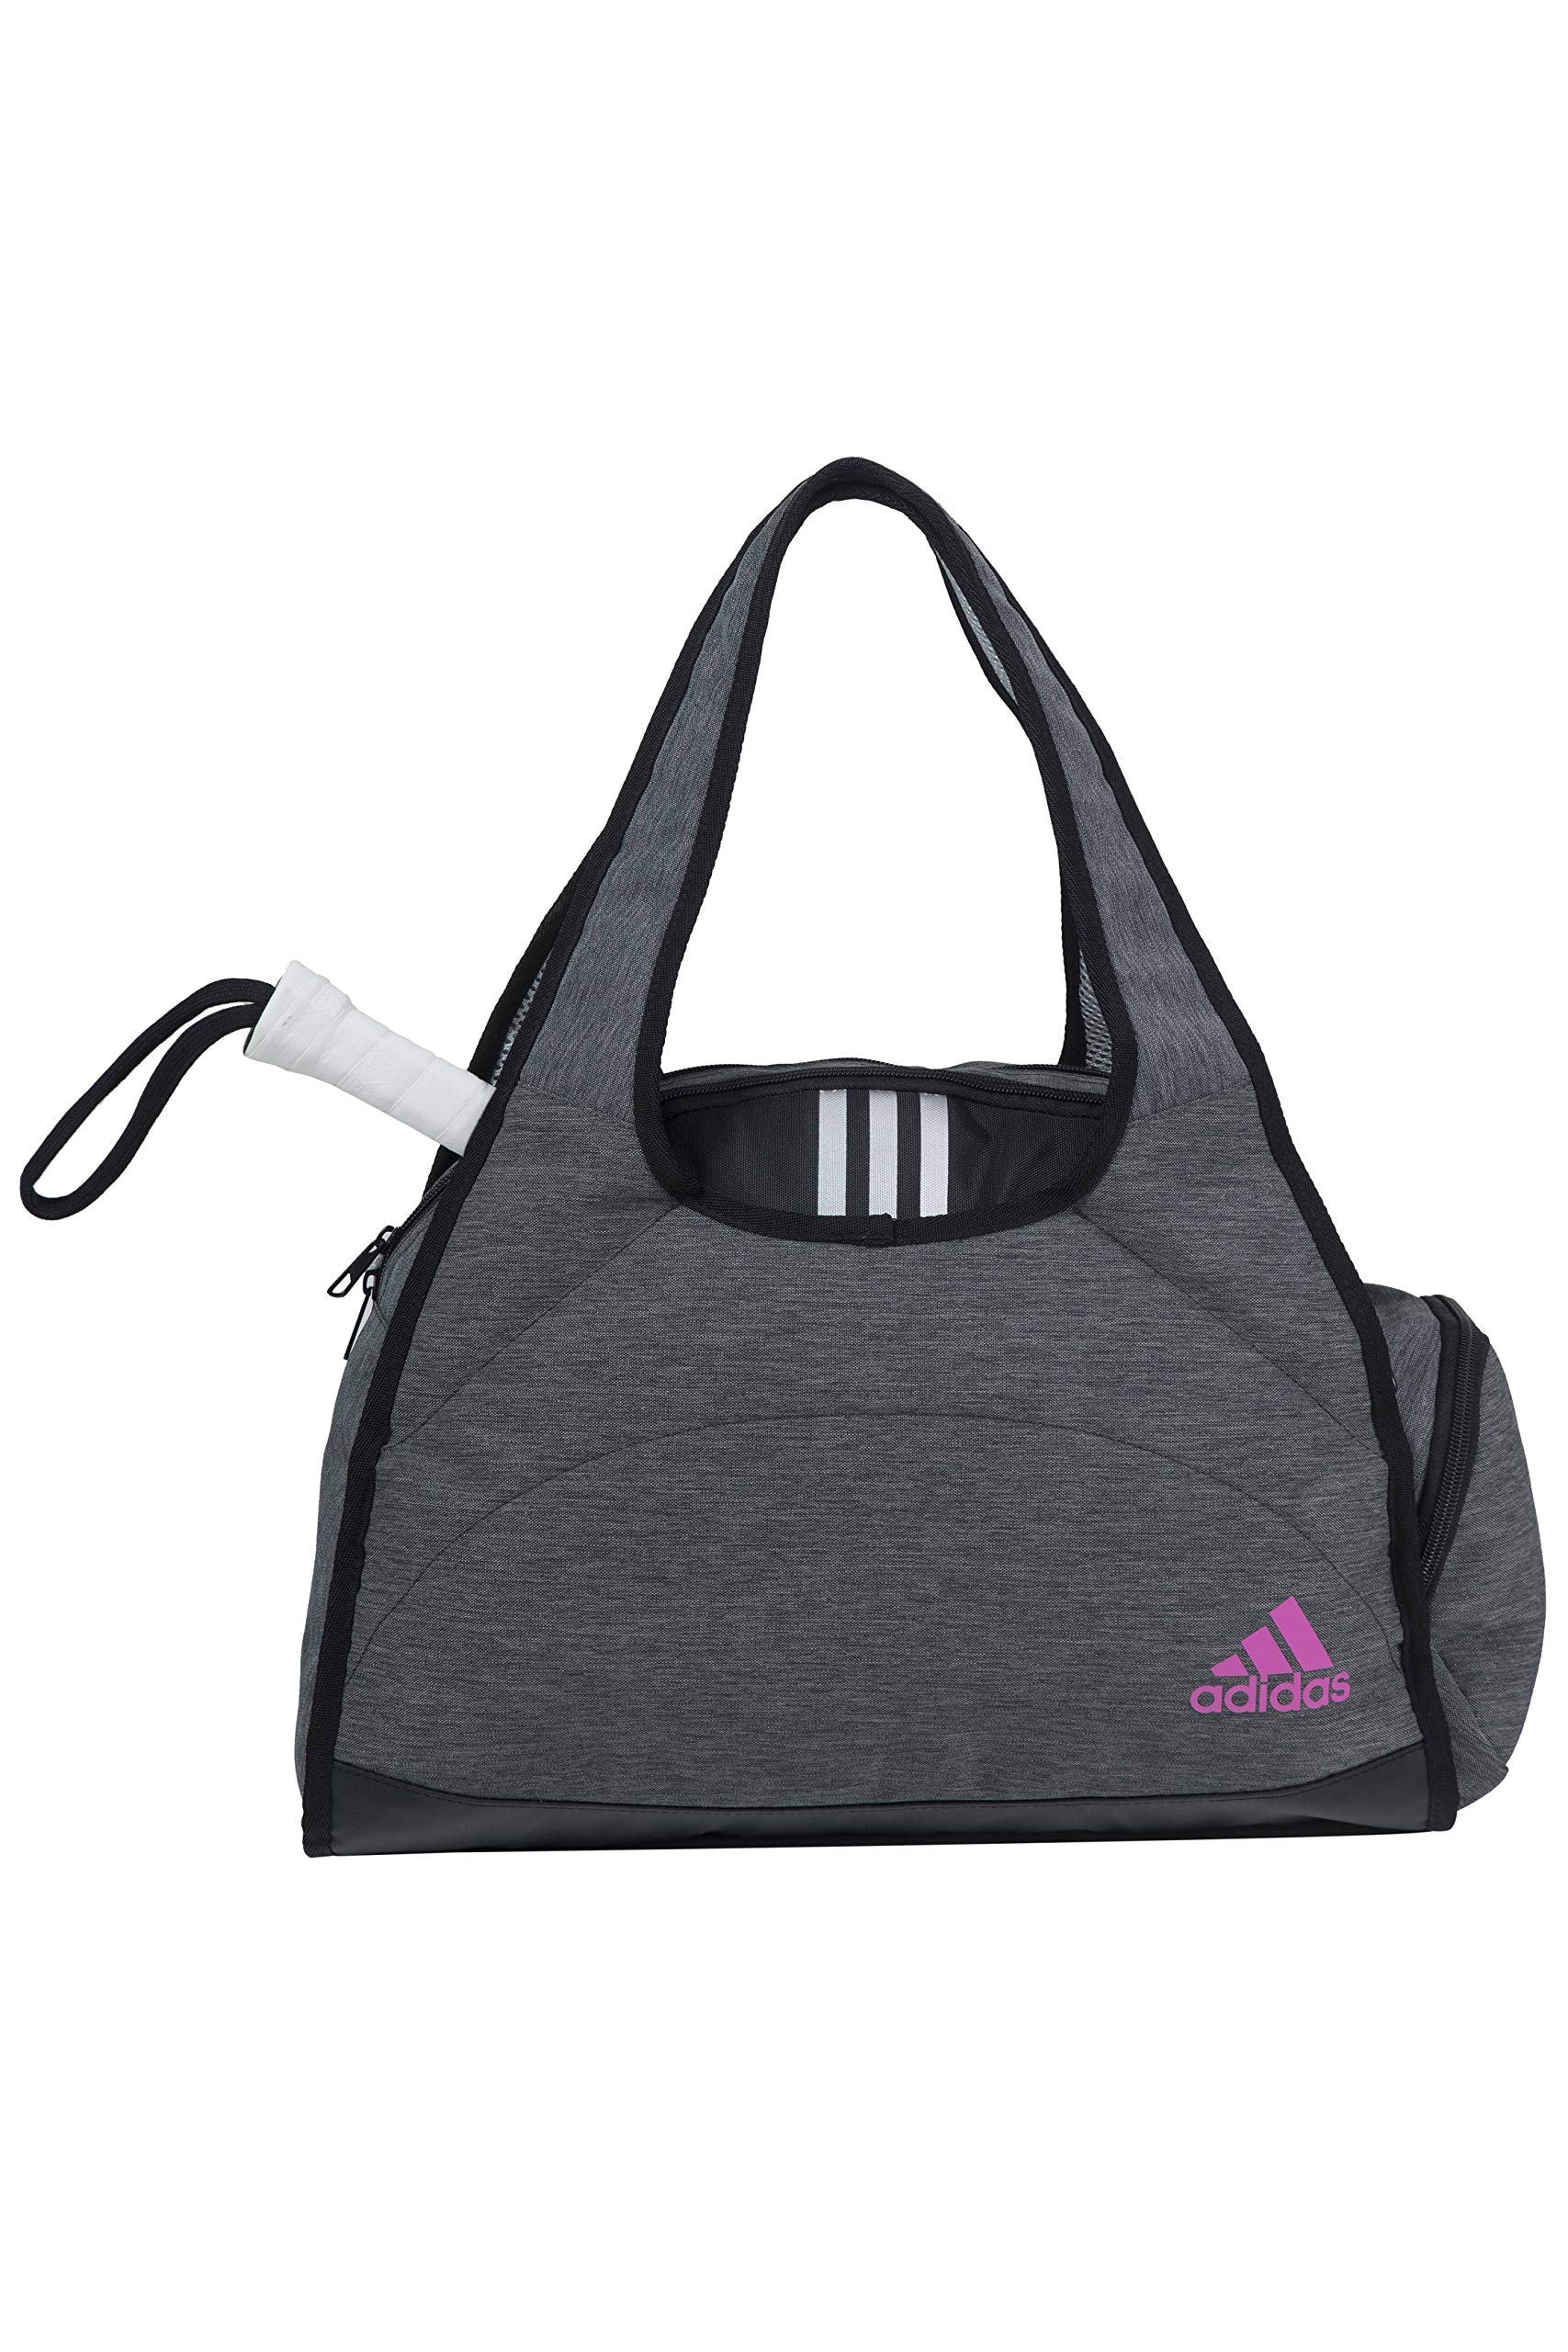 adidas, Bolso Weekend 1.9 2019 Gris Adultos unisex ...